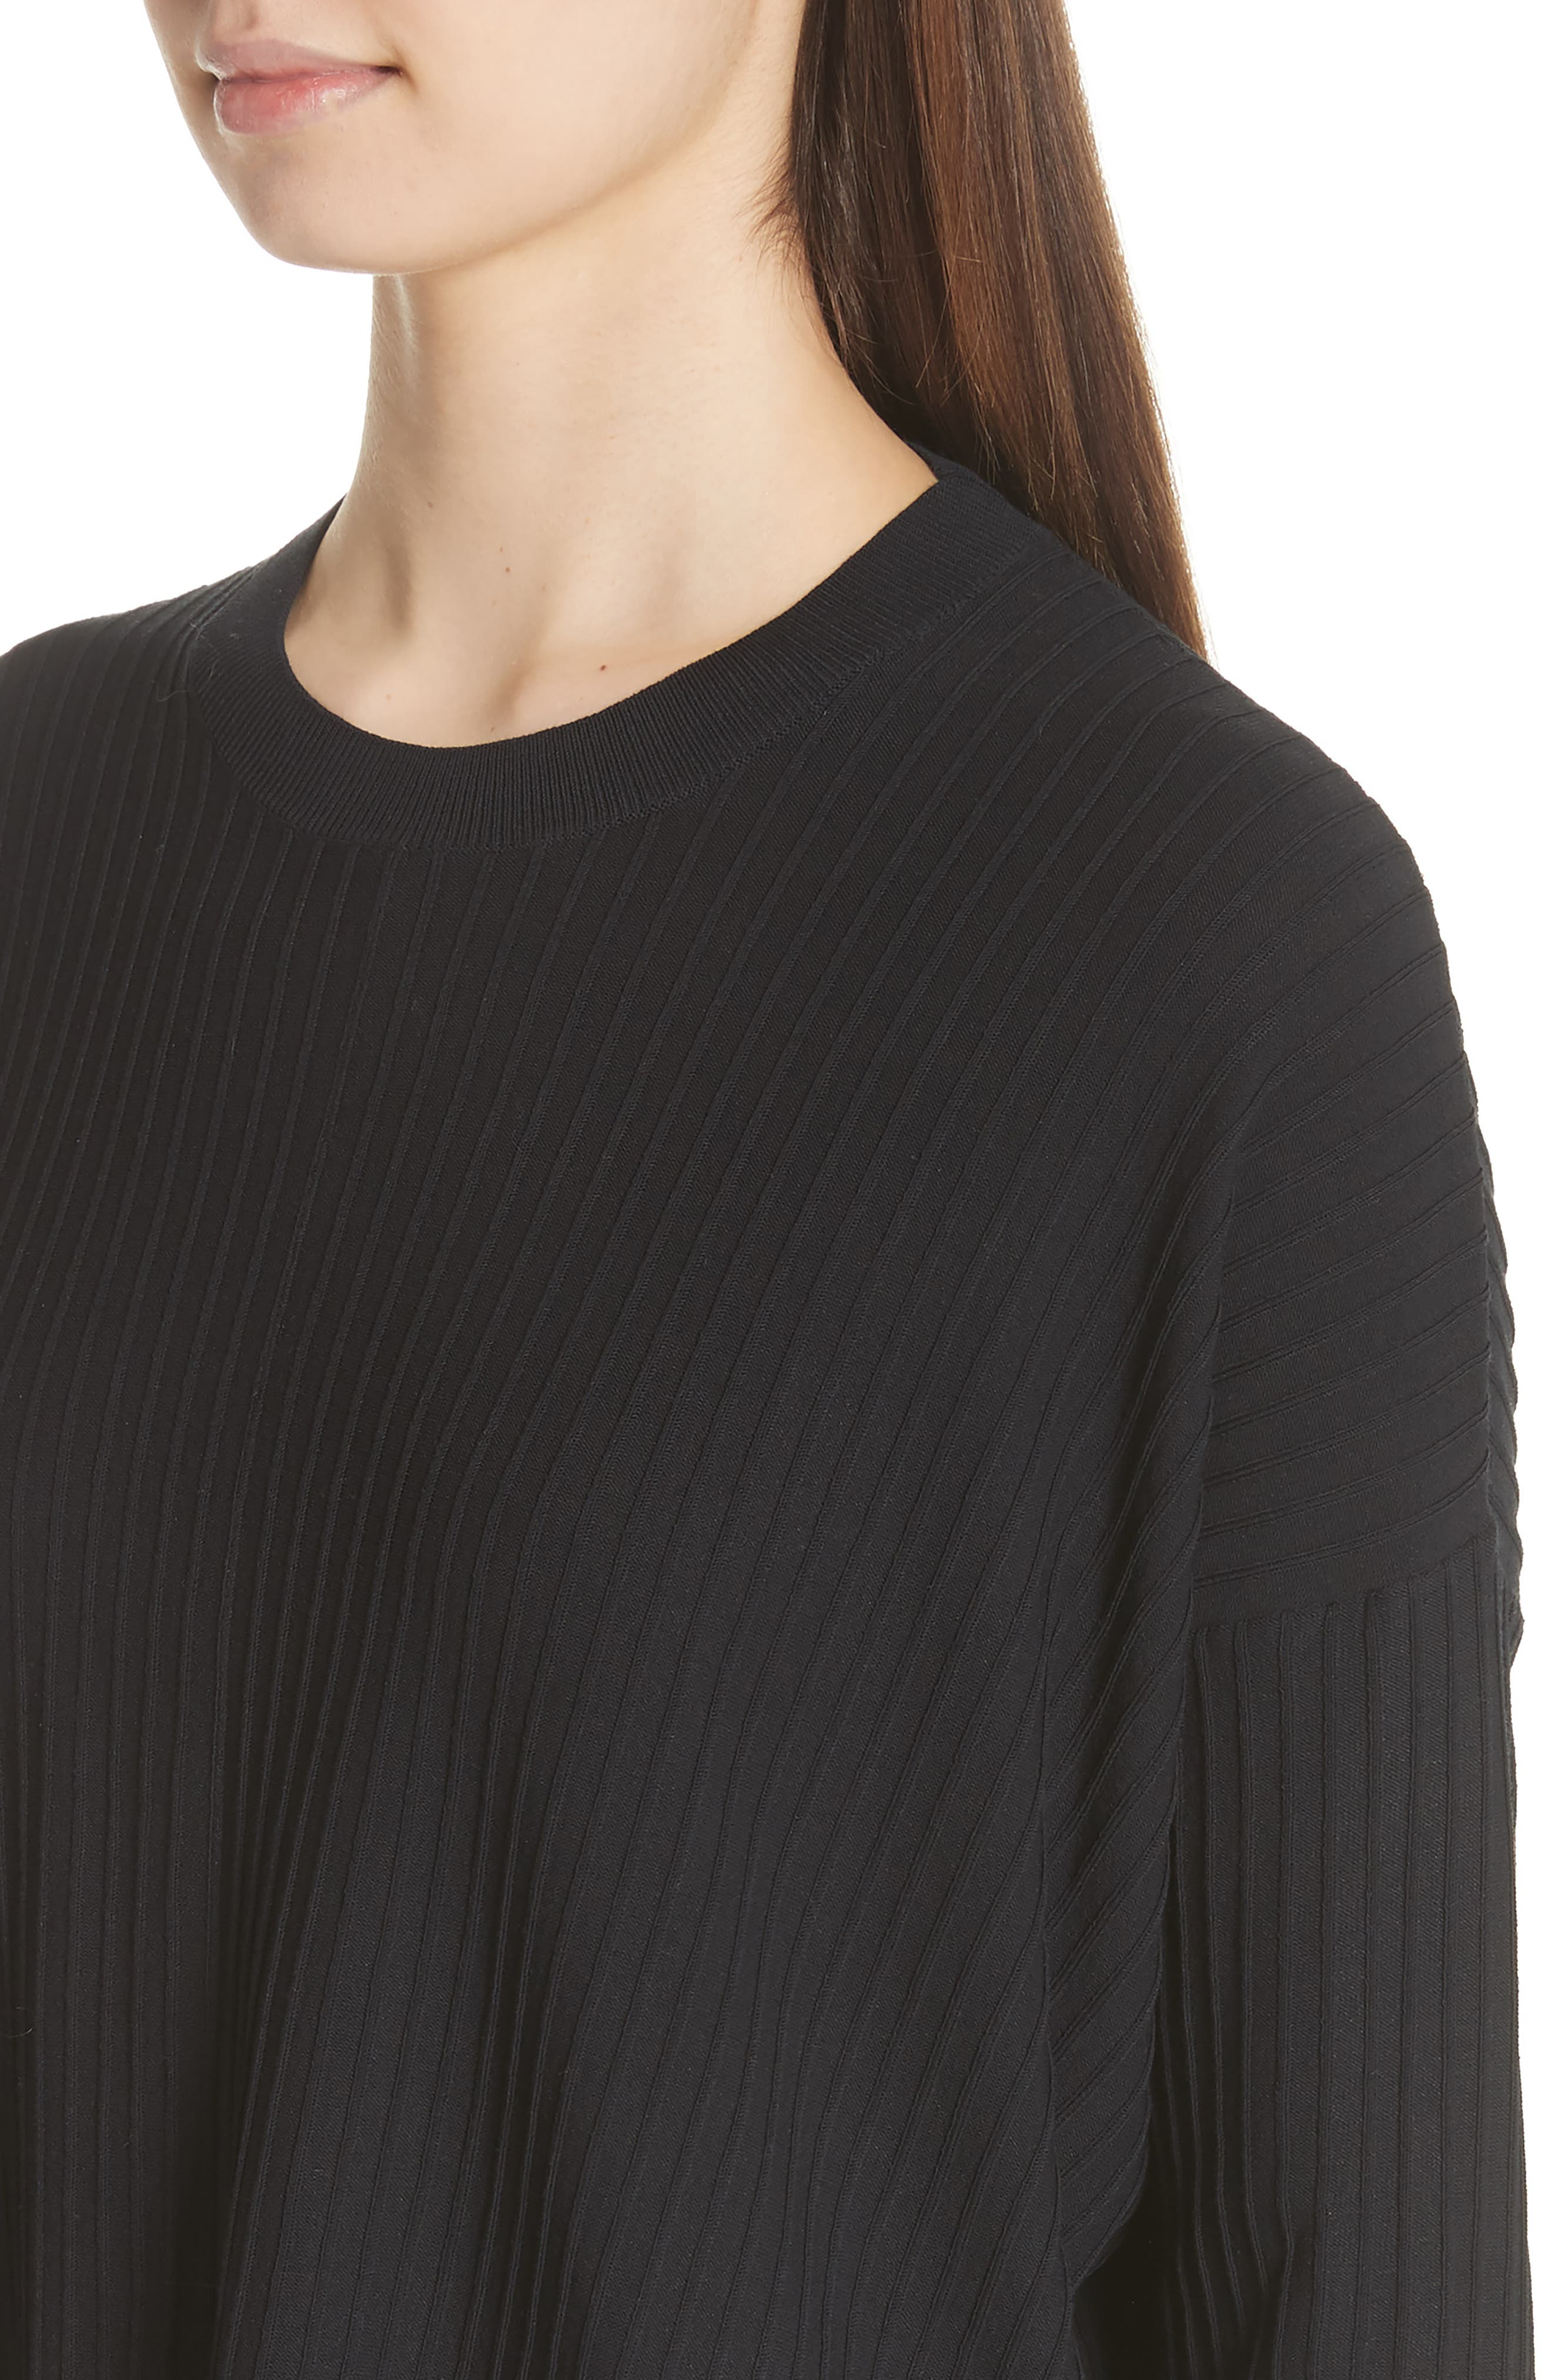 Issy Ribbed Sweater,                             Alternate thumbnail 4, color,                             Black